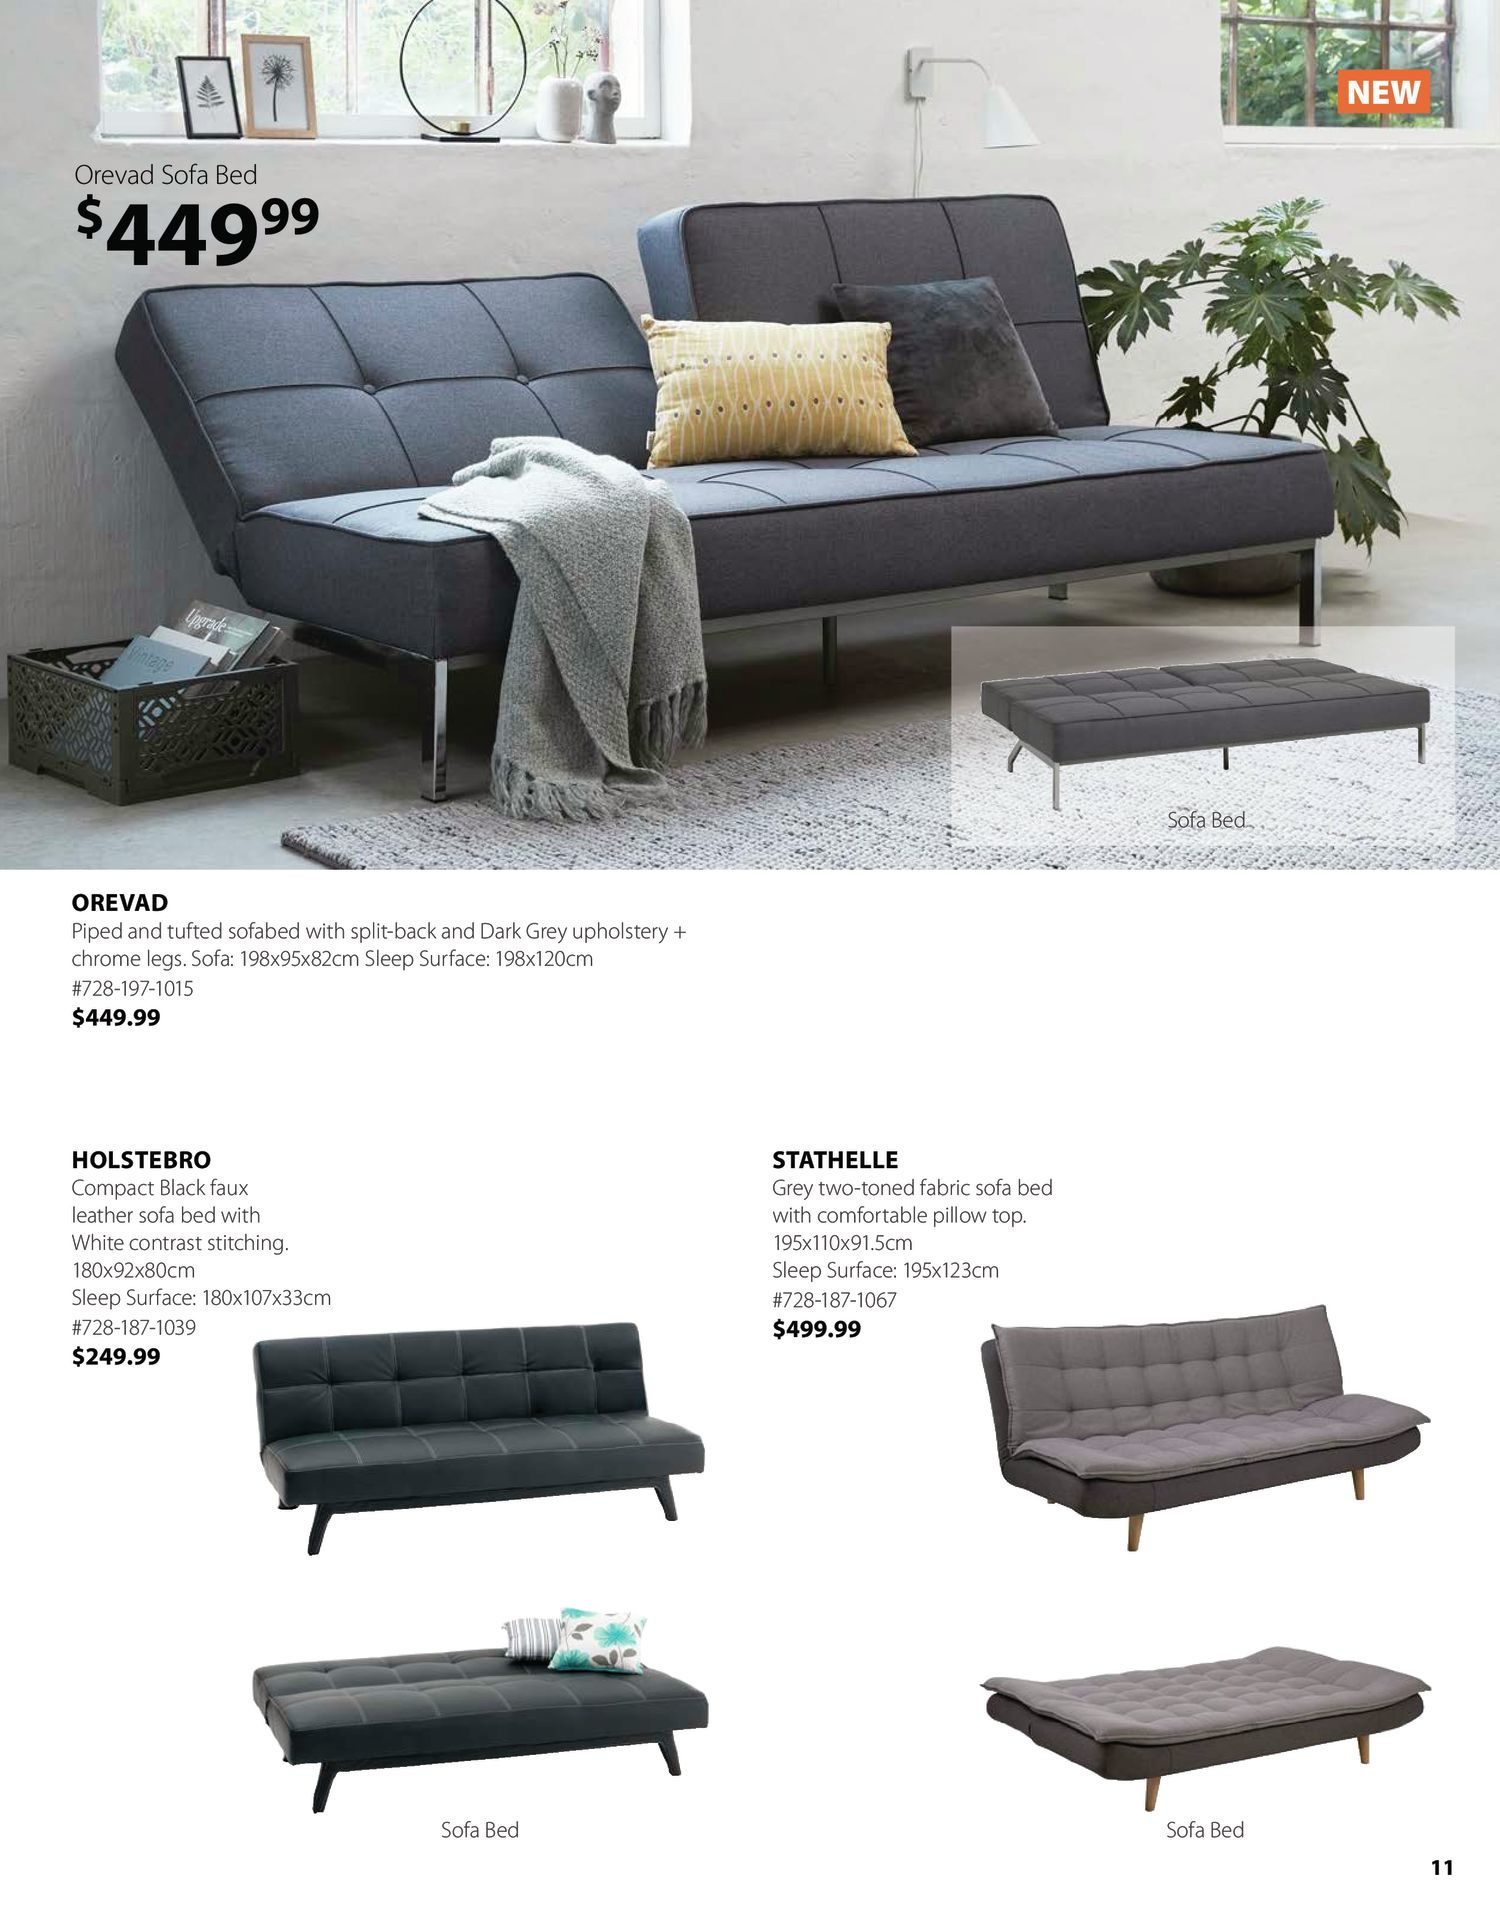 Jysk - Furniture Catalogue - Be Inspired - Page 11